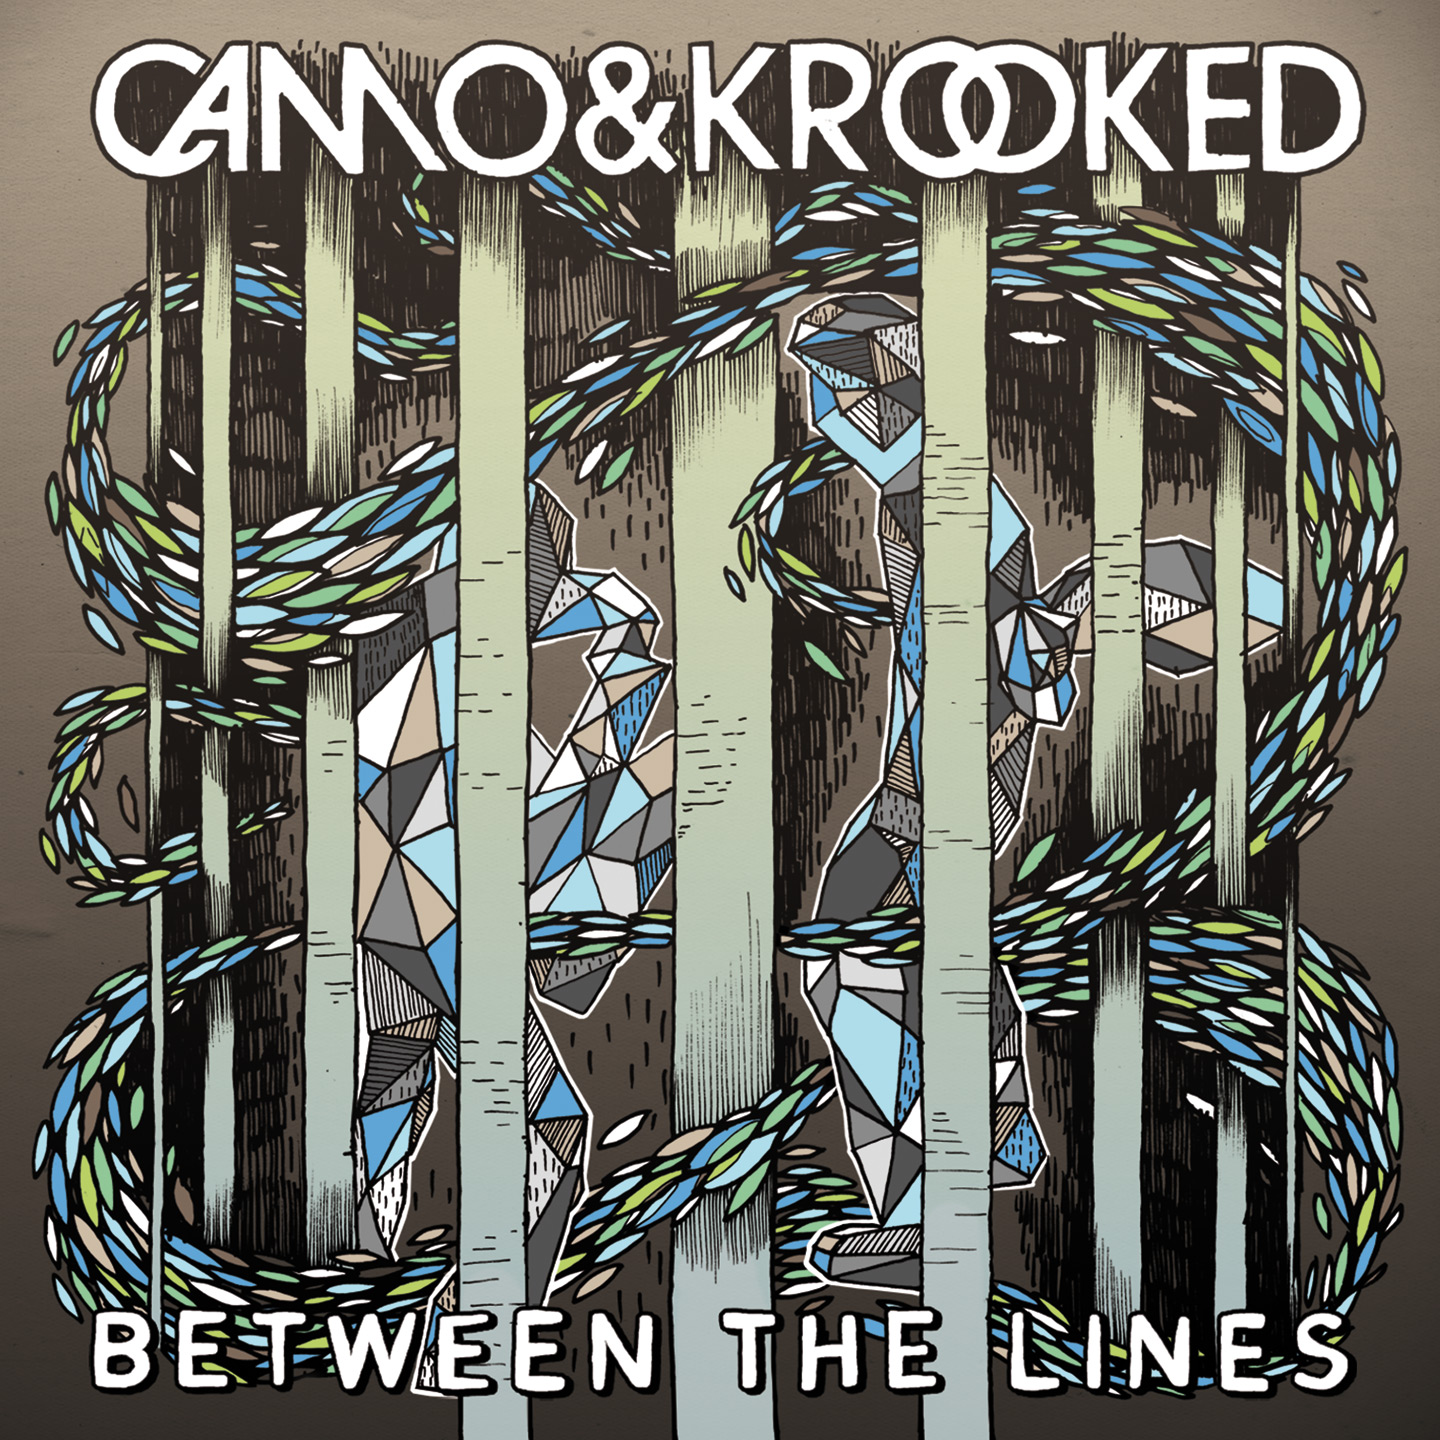 Camo & Krooked/BETWEEN THE LINES CD